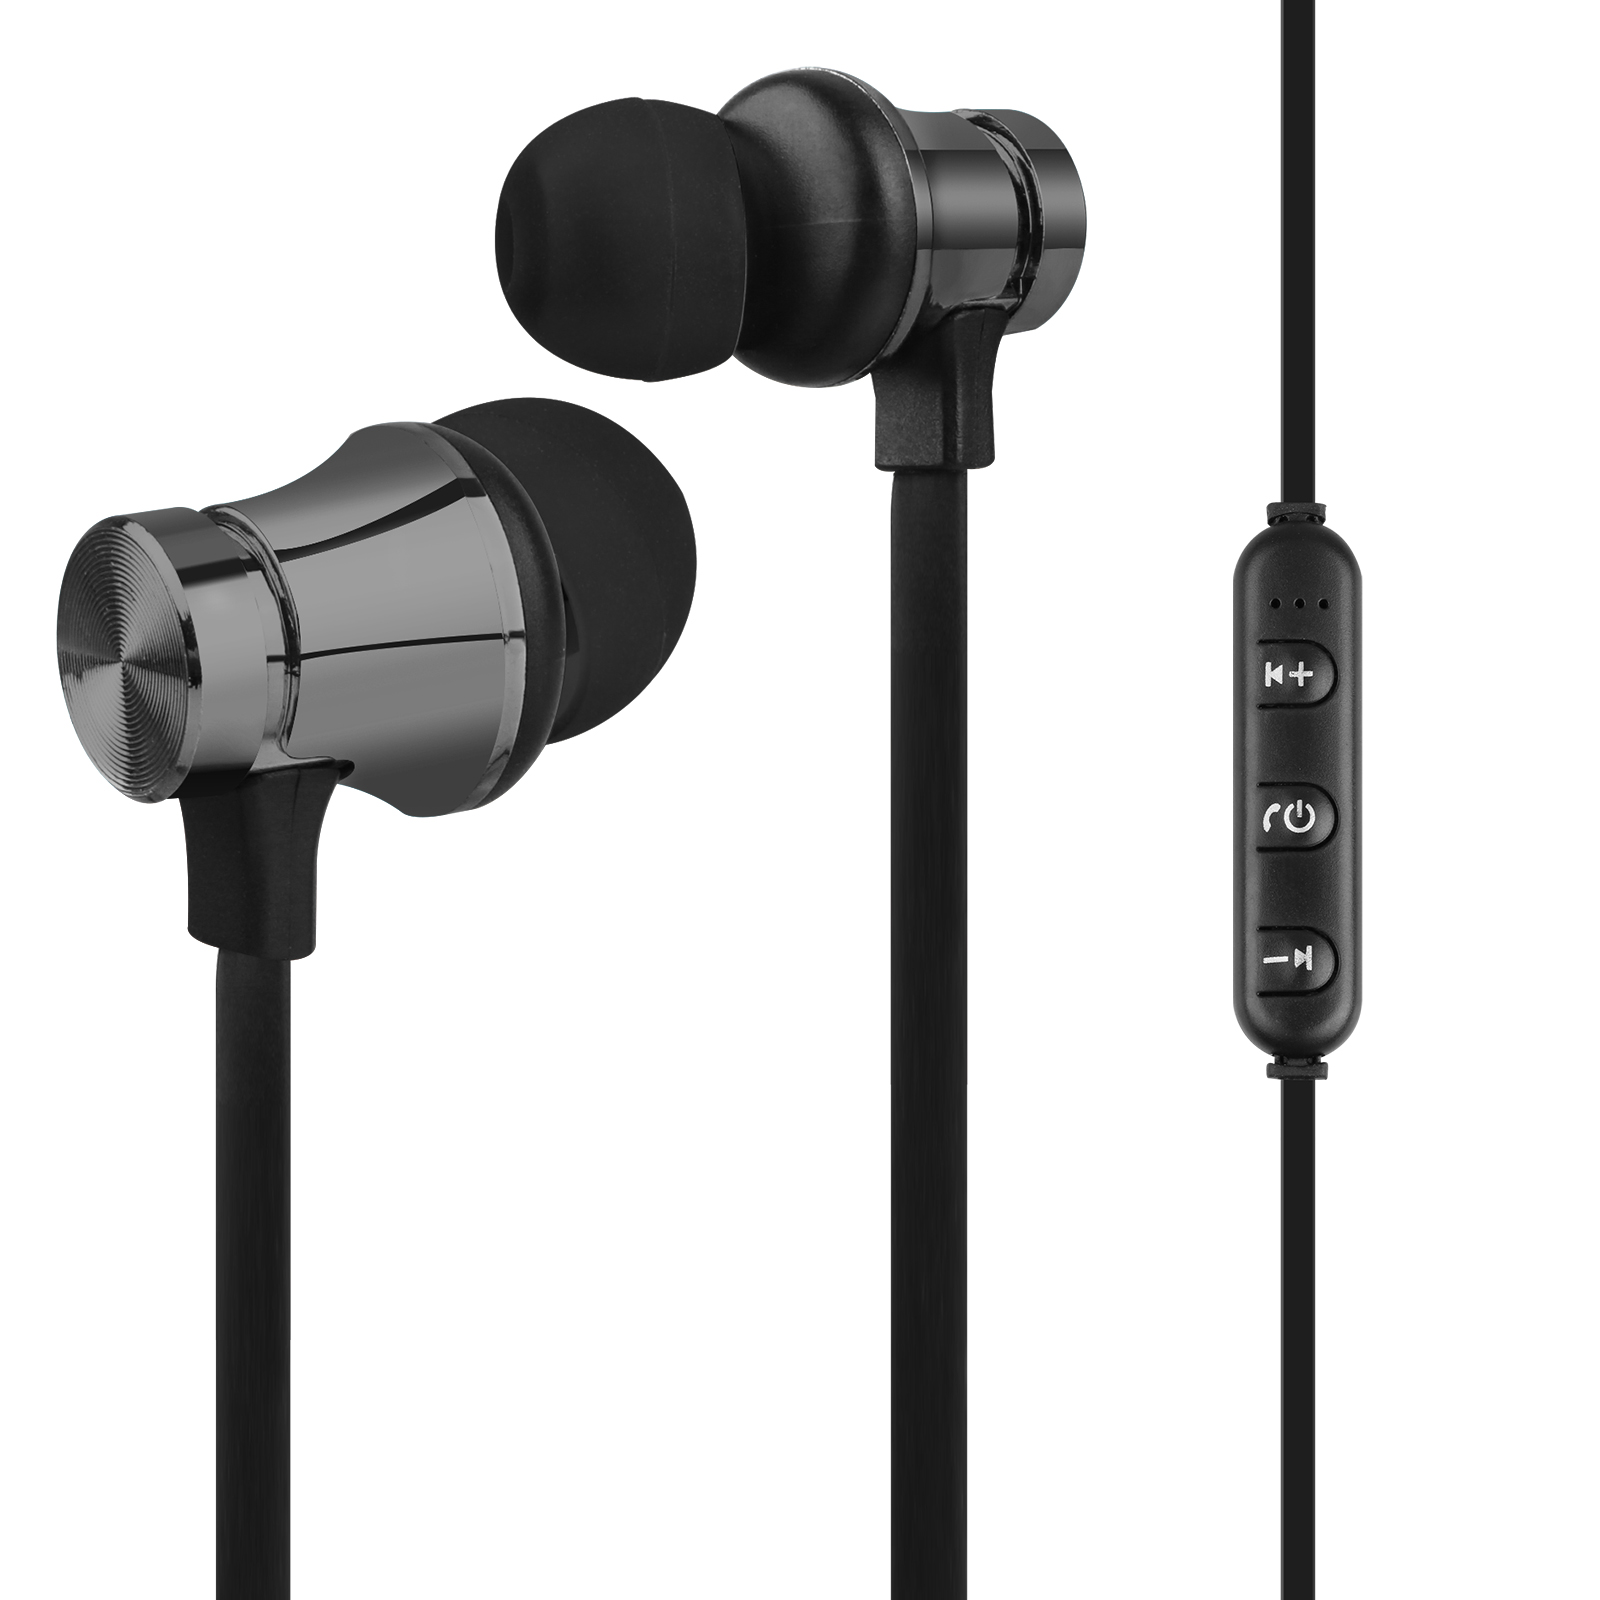 Wireless Bluetooth Sport Headphones, EEEKit Universal Bluetooth 4.2 In-Ear Magnetic Earphone Stereo Headset for Smartphones Tablets